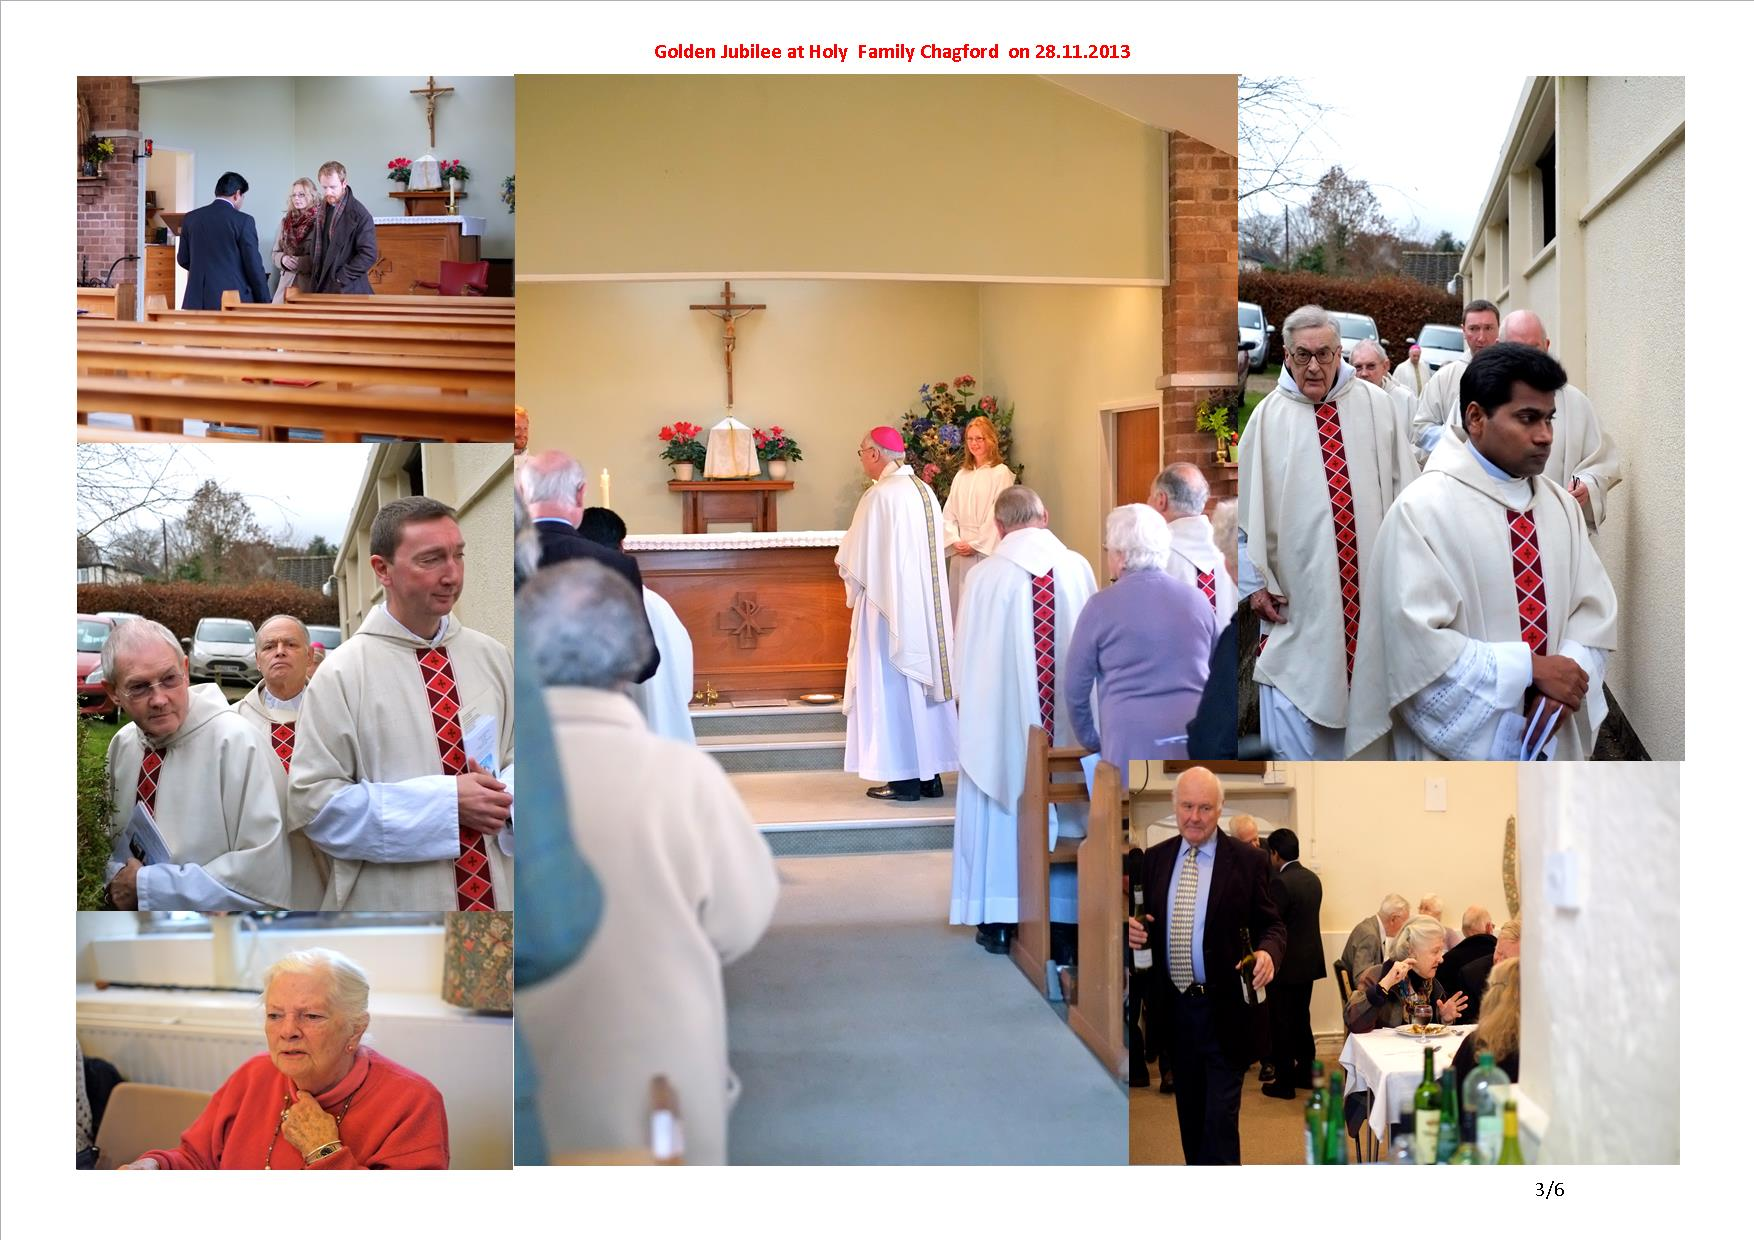 jubilee-celebration-at-holy-famil-chagford-28-11-2013-03